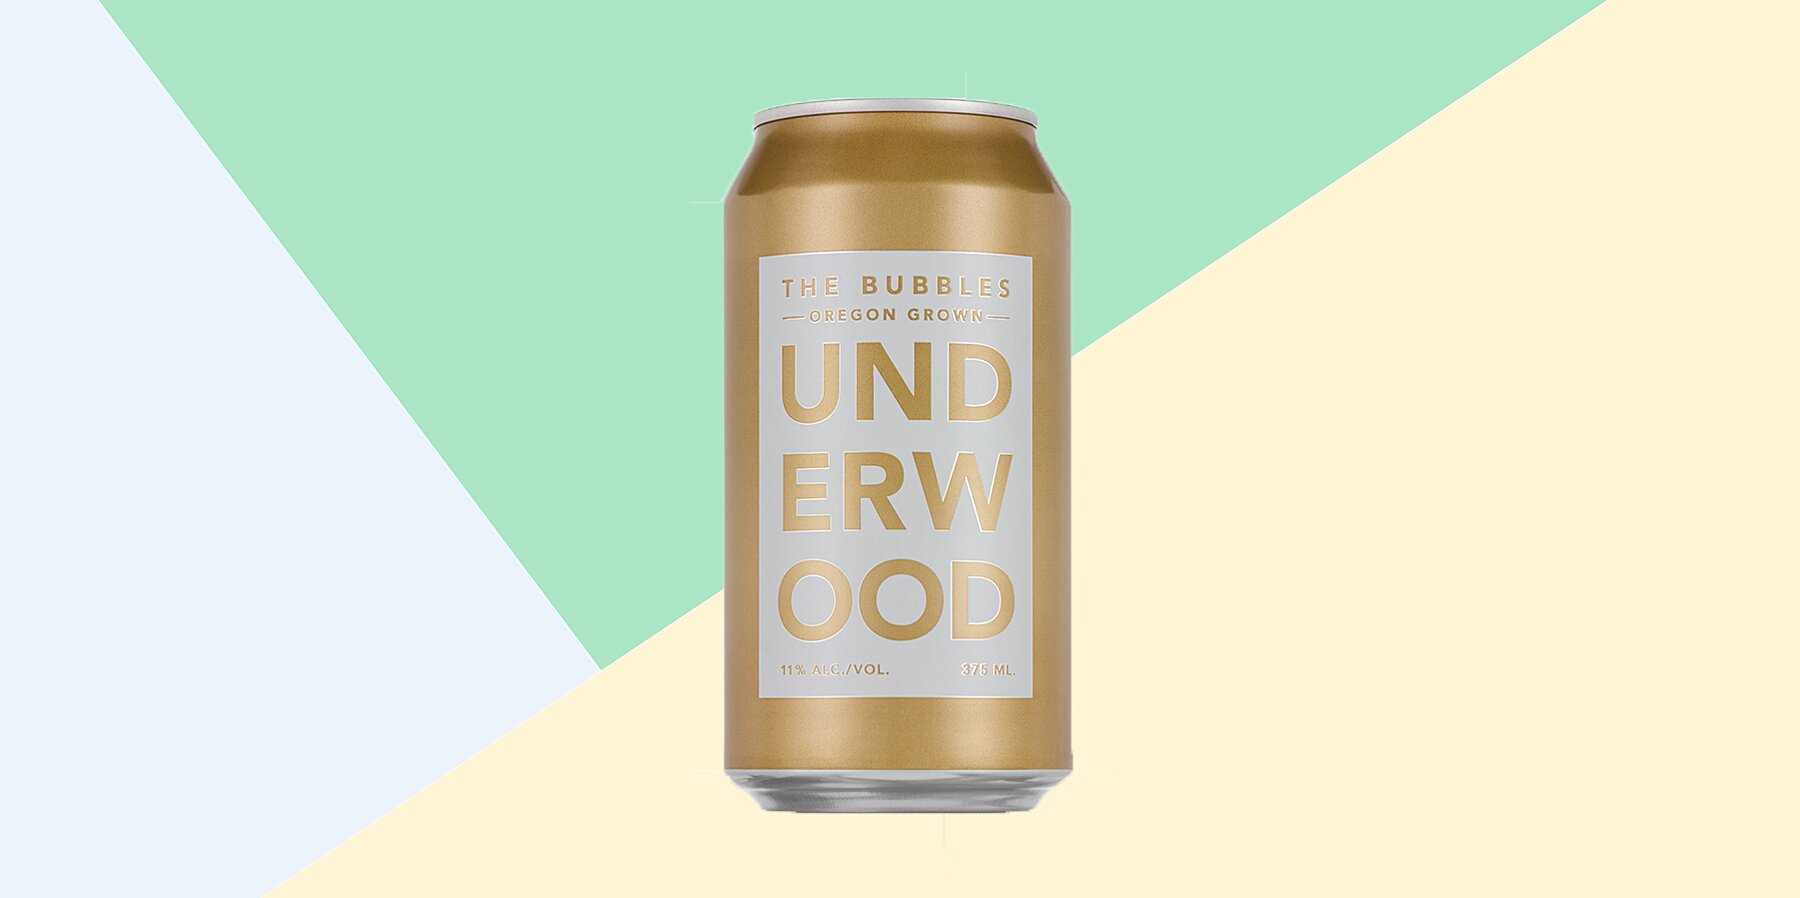 Best Canned Wines for Your Picnic Basket